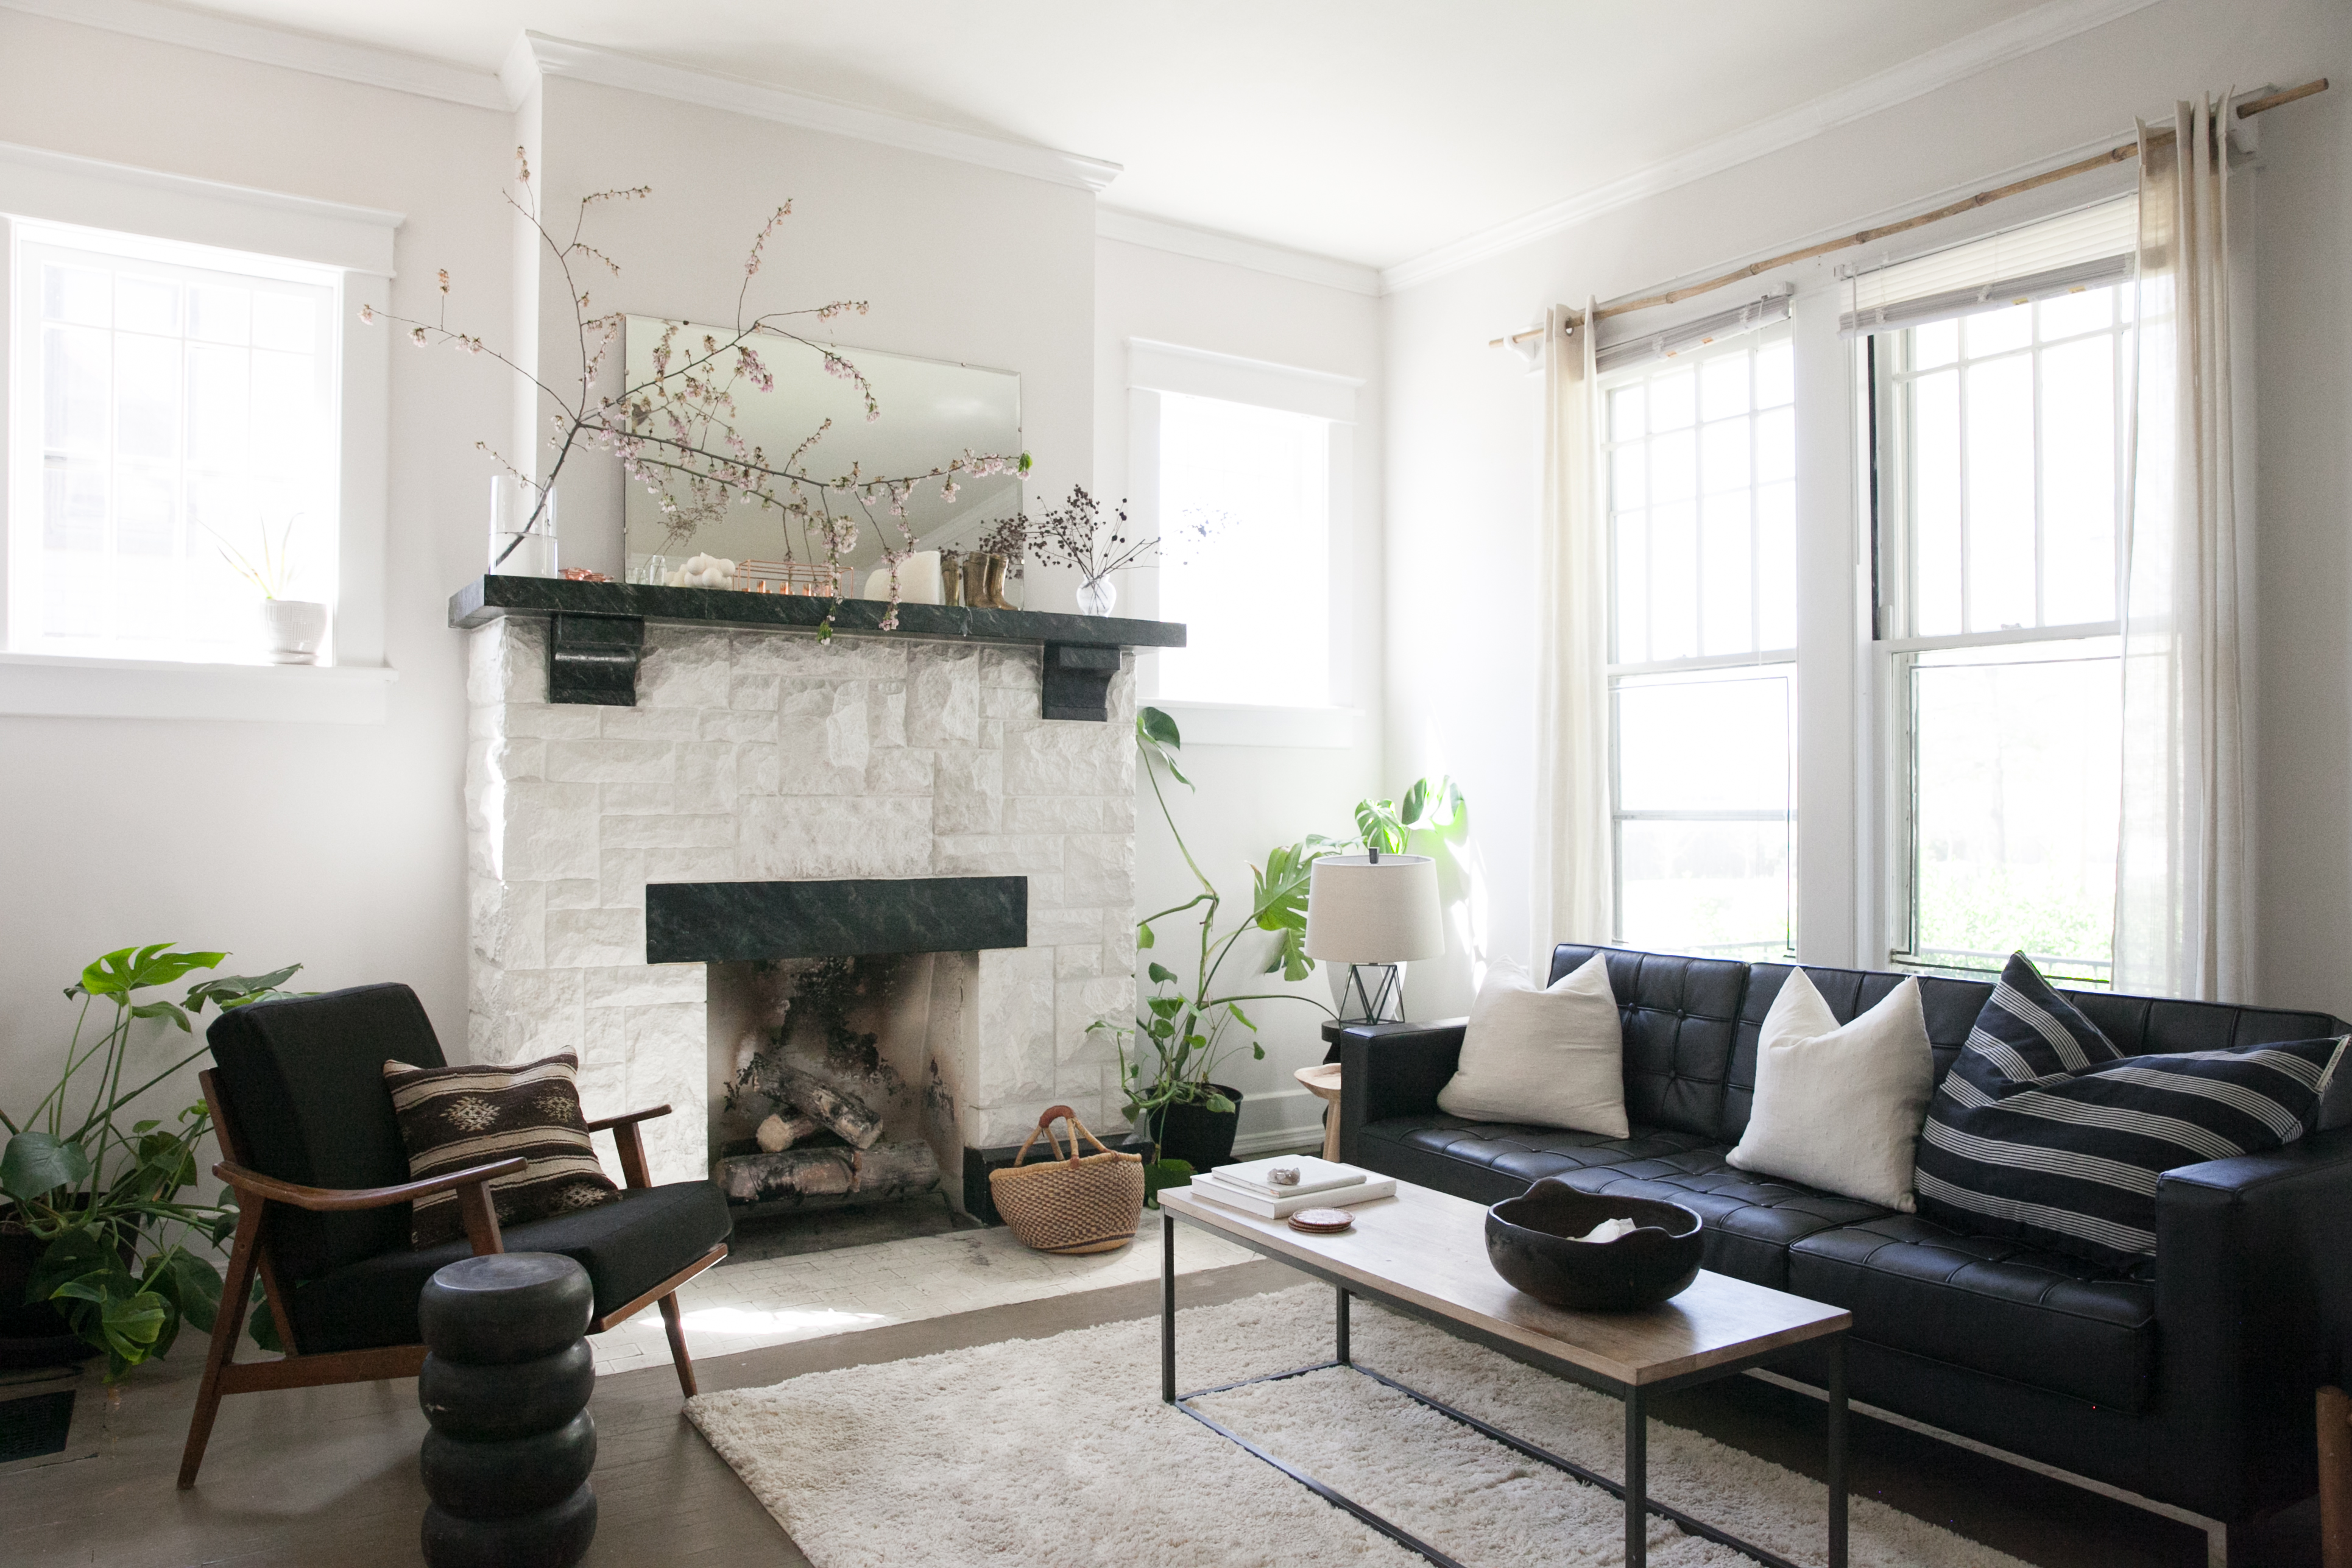 Living Room Layout Mistakes To Avoid While Decorating | Apartment Therapy